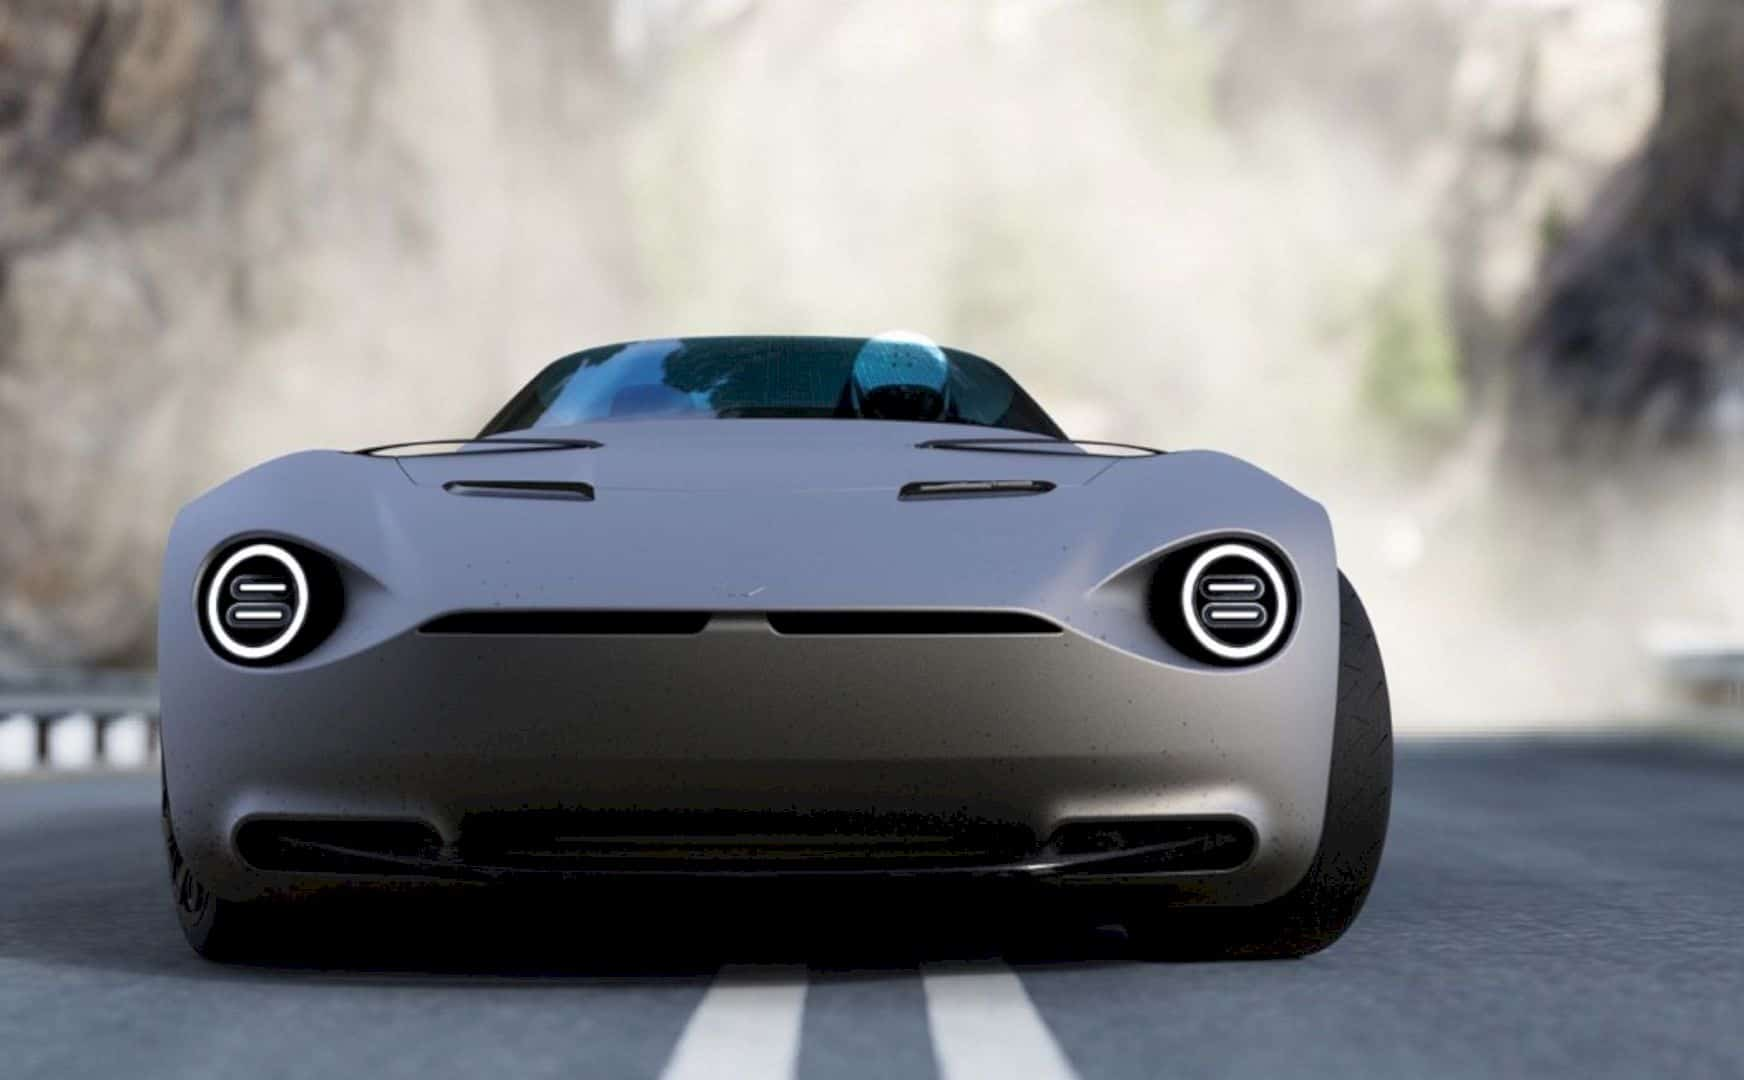 The Roadster Mg Concept Design 3